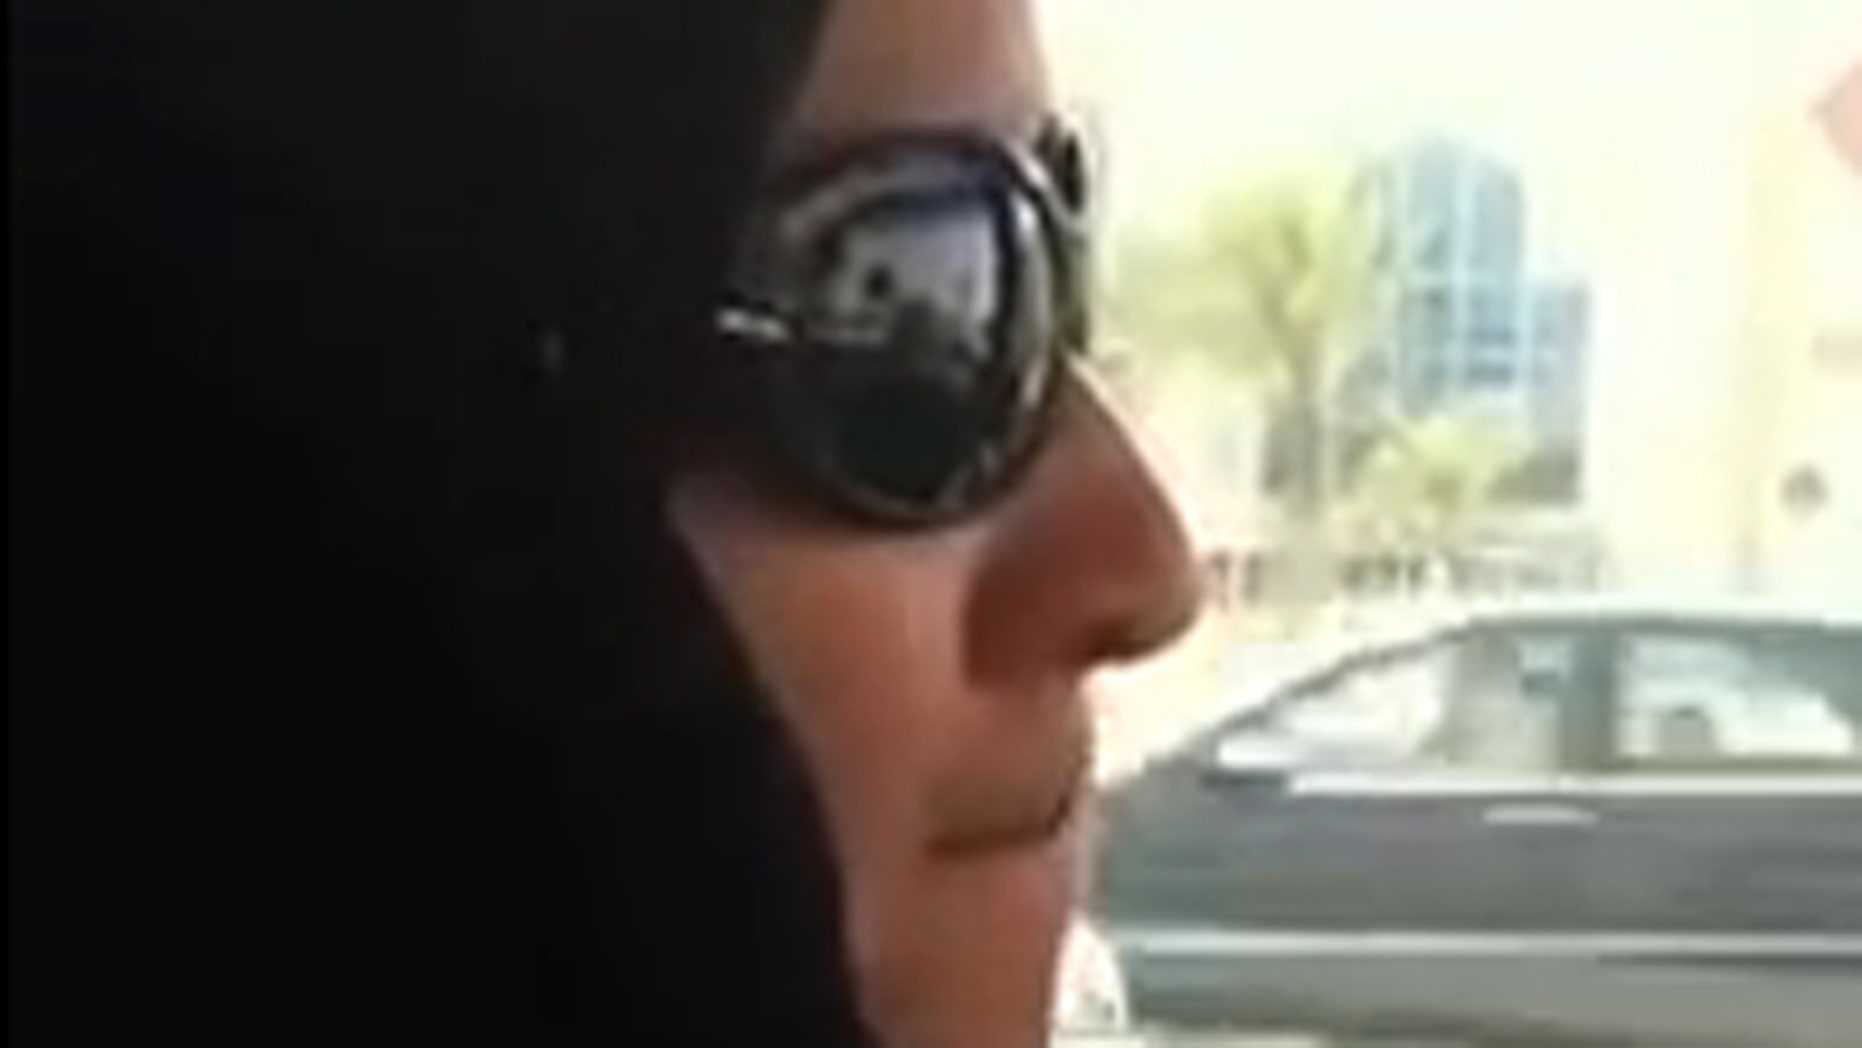 Manal al-Sherif, a 32-year-old woman who posted a video of herself on Facebook and YouTube behind the wheel while driving in the eastern city of Khobar last week, was expected to be released on Friday after five days in jail on charges of driving without a license, according to her attorney, Adnan Al-Saleh. (YouTube)